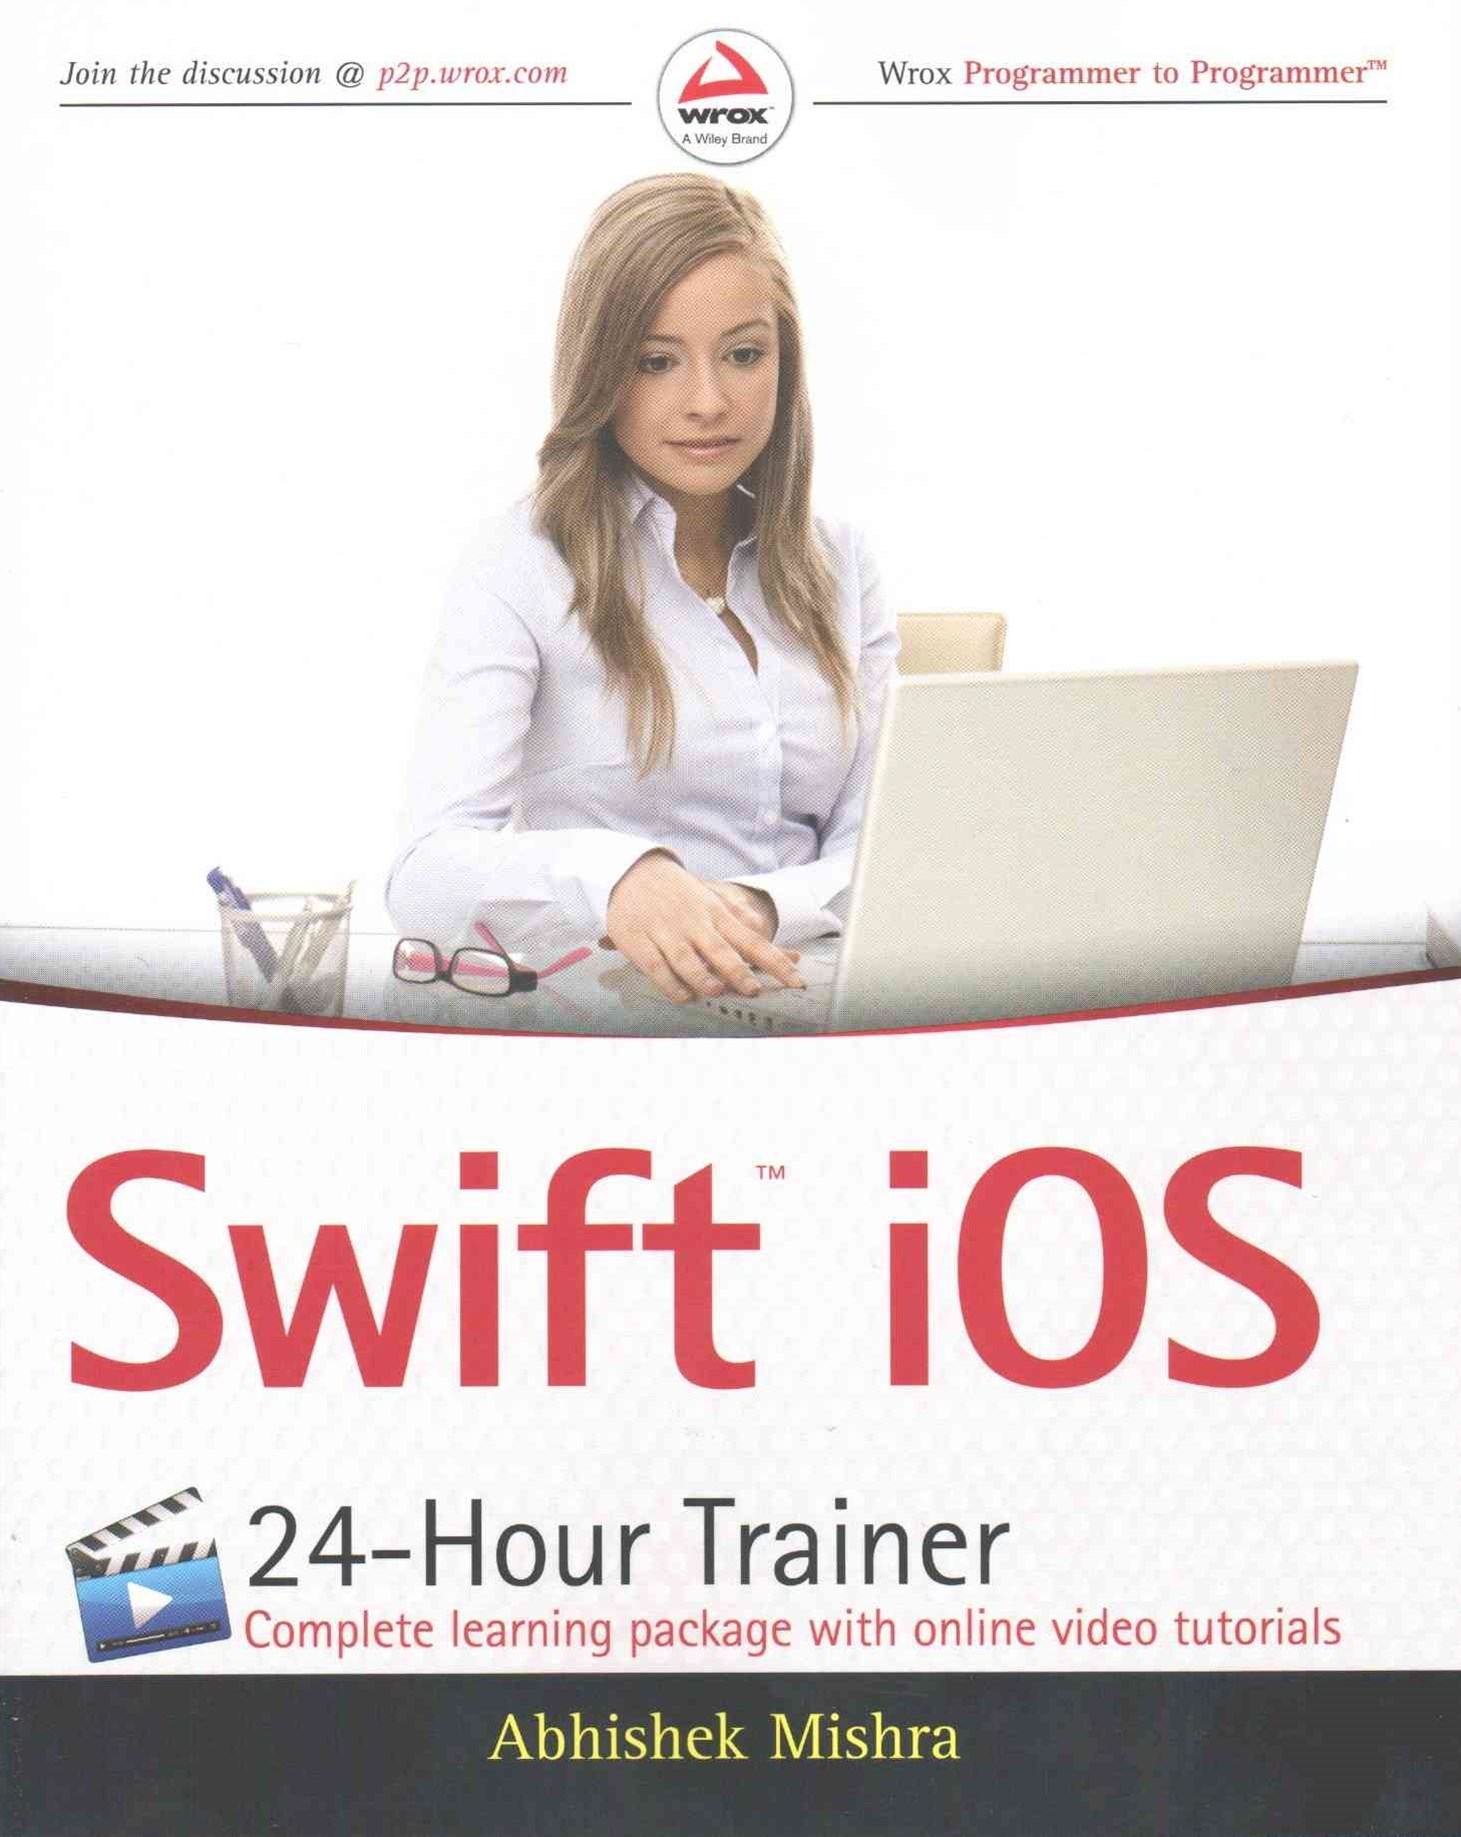 Swift 2 Ios 24-Hour Trainer